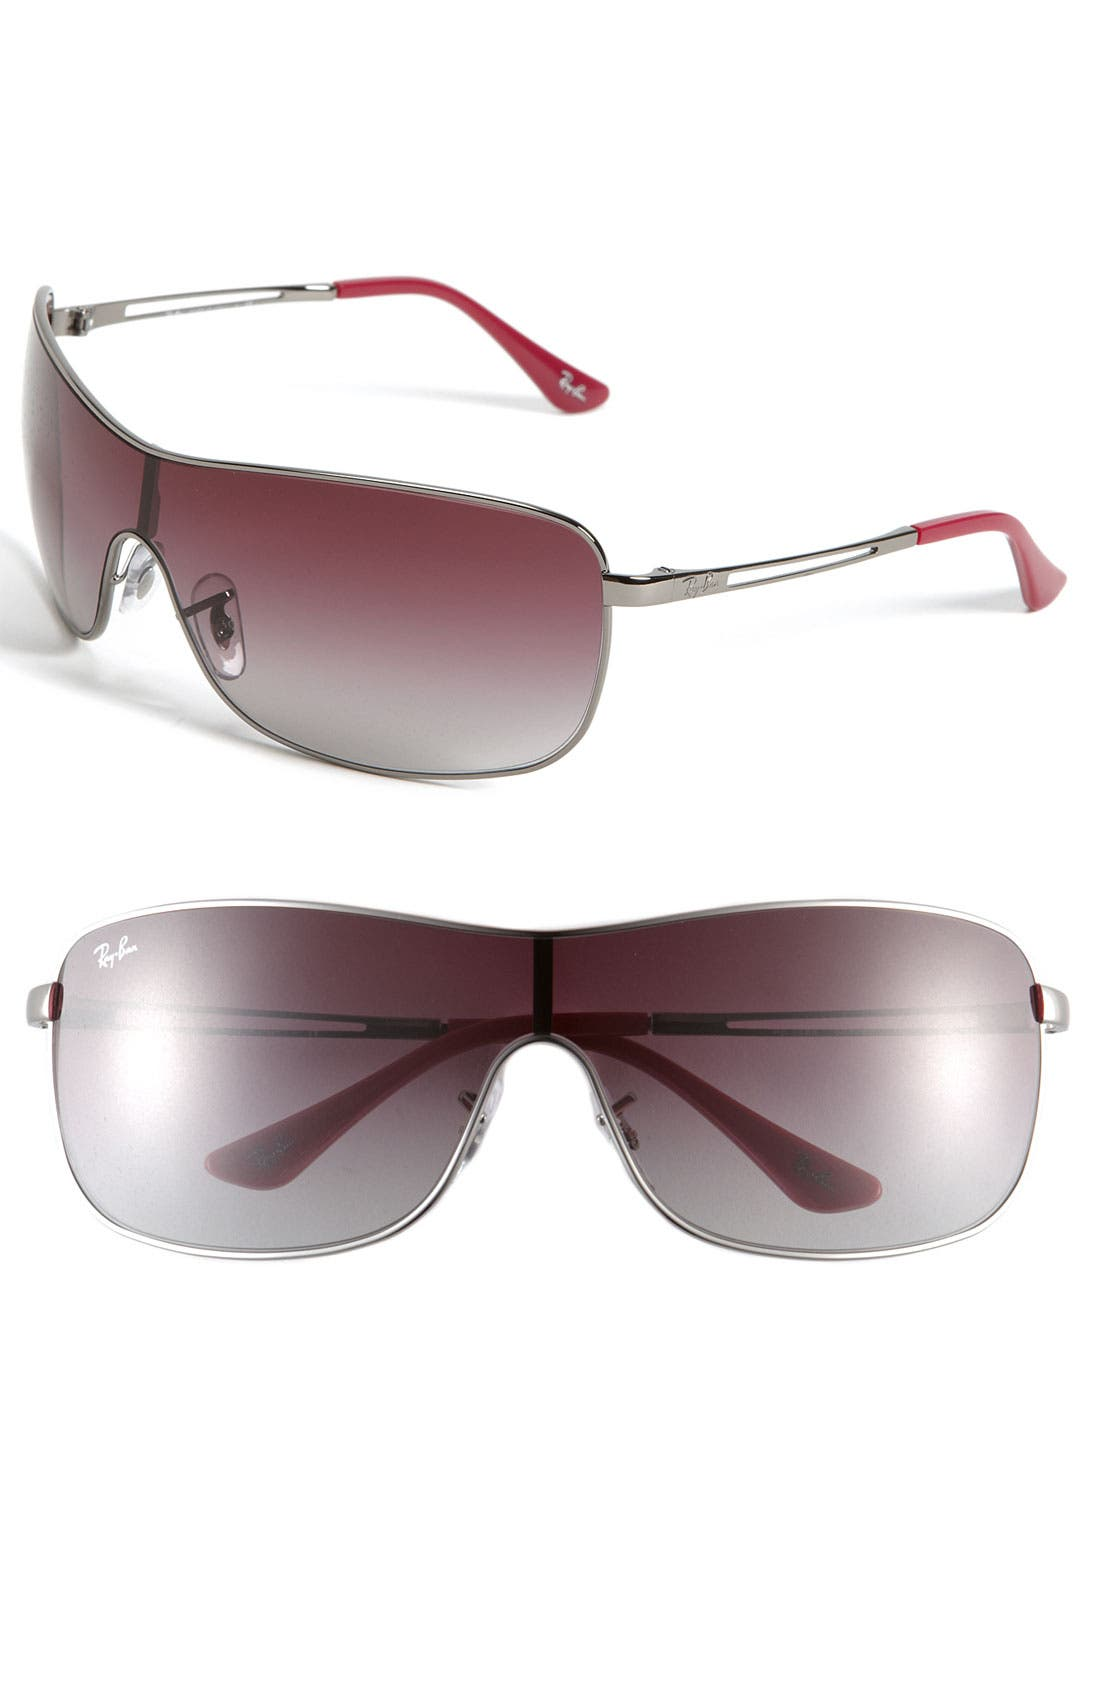 Main Image - Ray-Ban 65mm Metal Shield Sunglasses